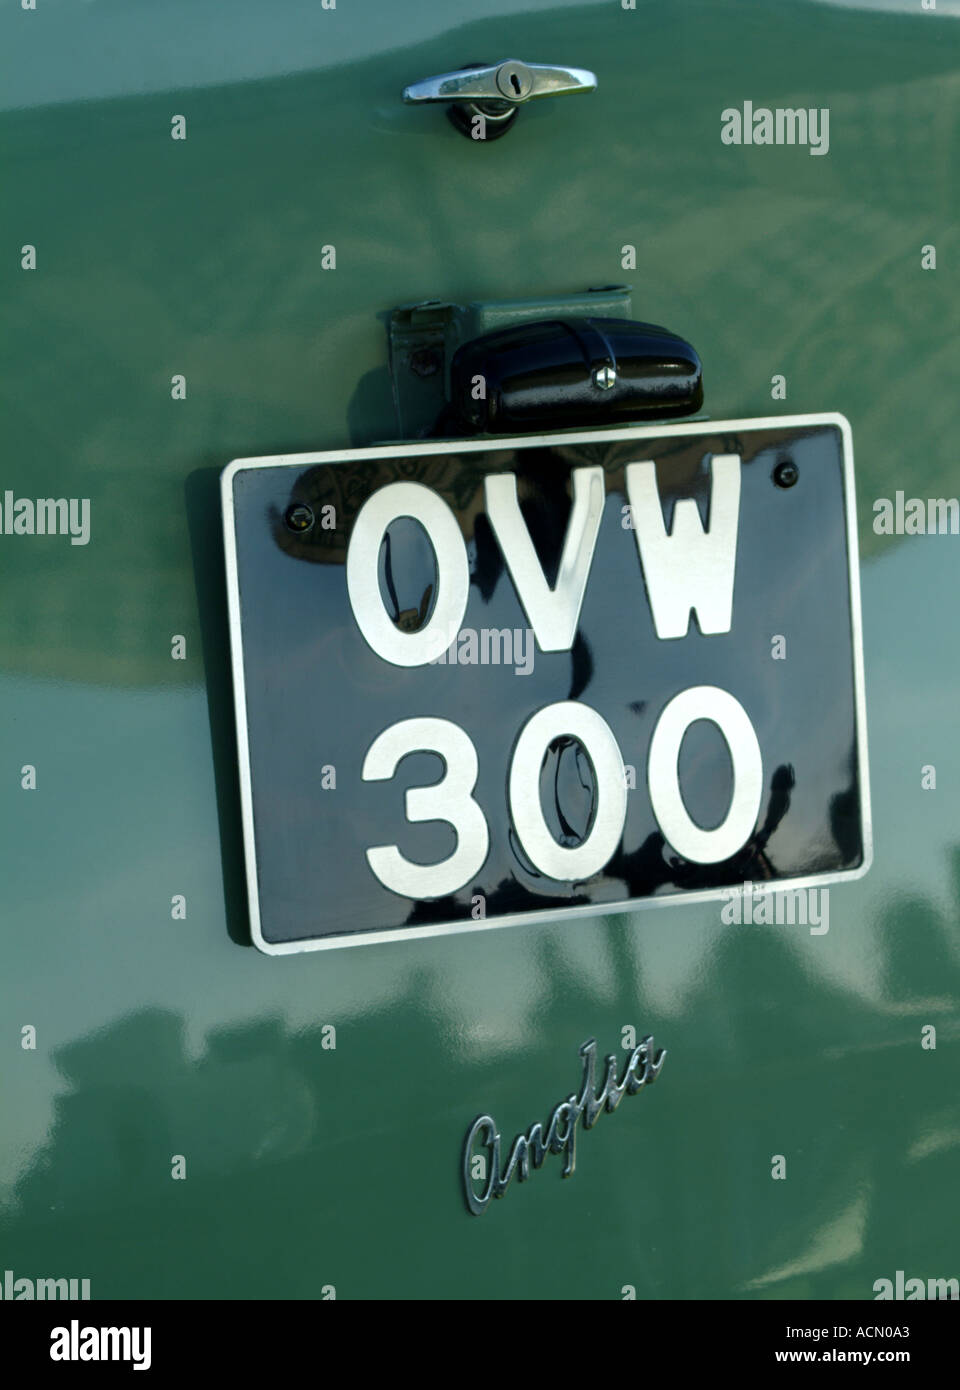 Cherished Number Plate Stock Photos & Cherished Number Plate Stock ...